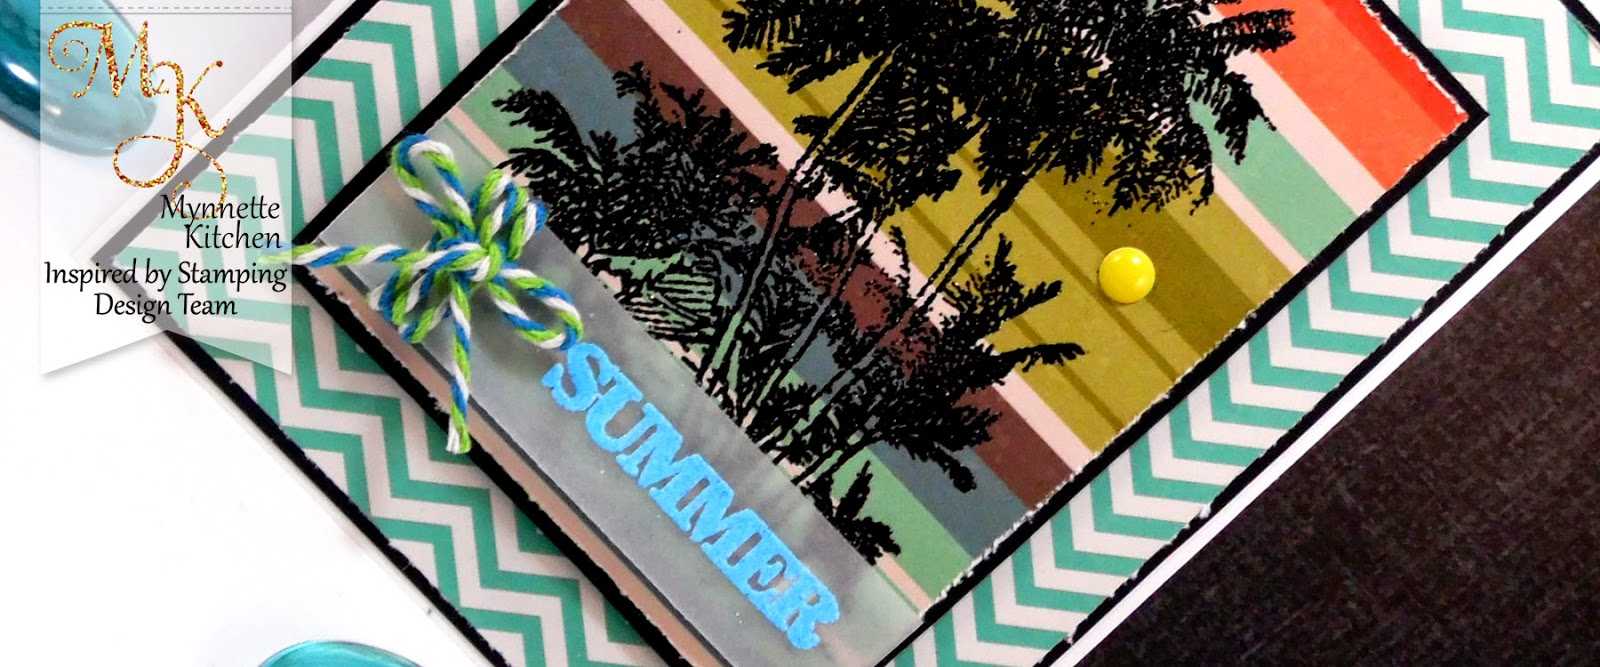 Inspired by Stamping, Mynn Kitchen, Tropical Paradise stamp set, Summer Fun stamp set, tropical card, thinking of you card, birthday card